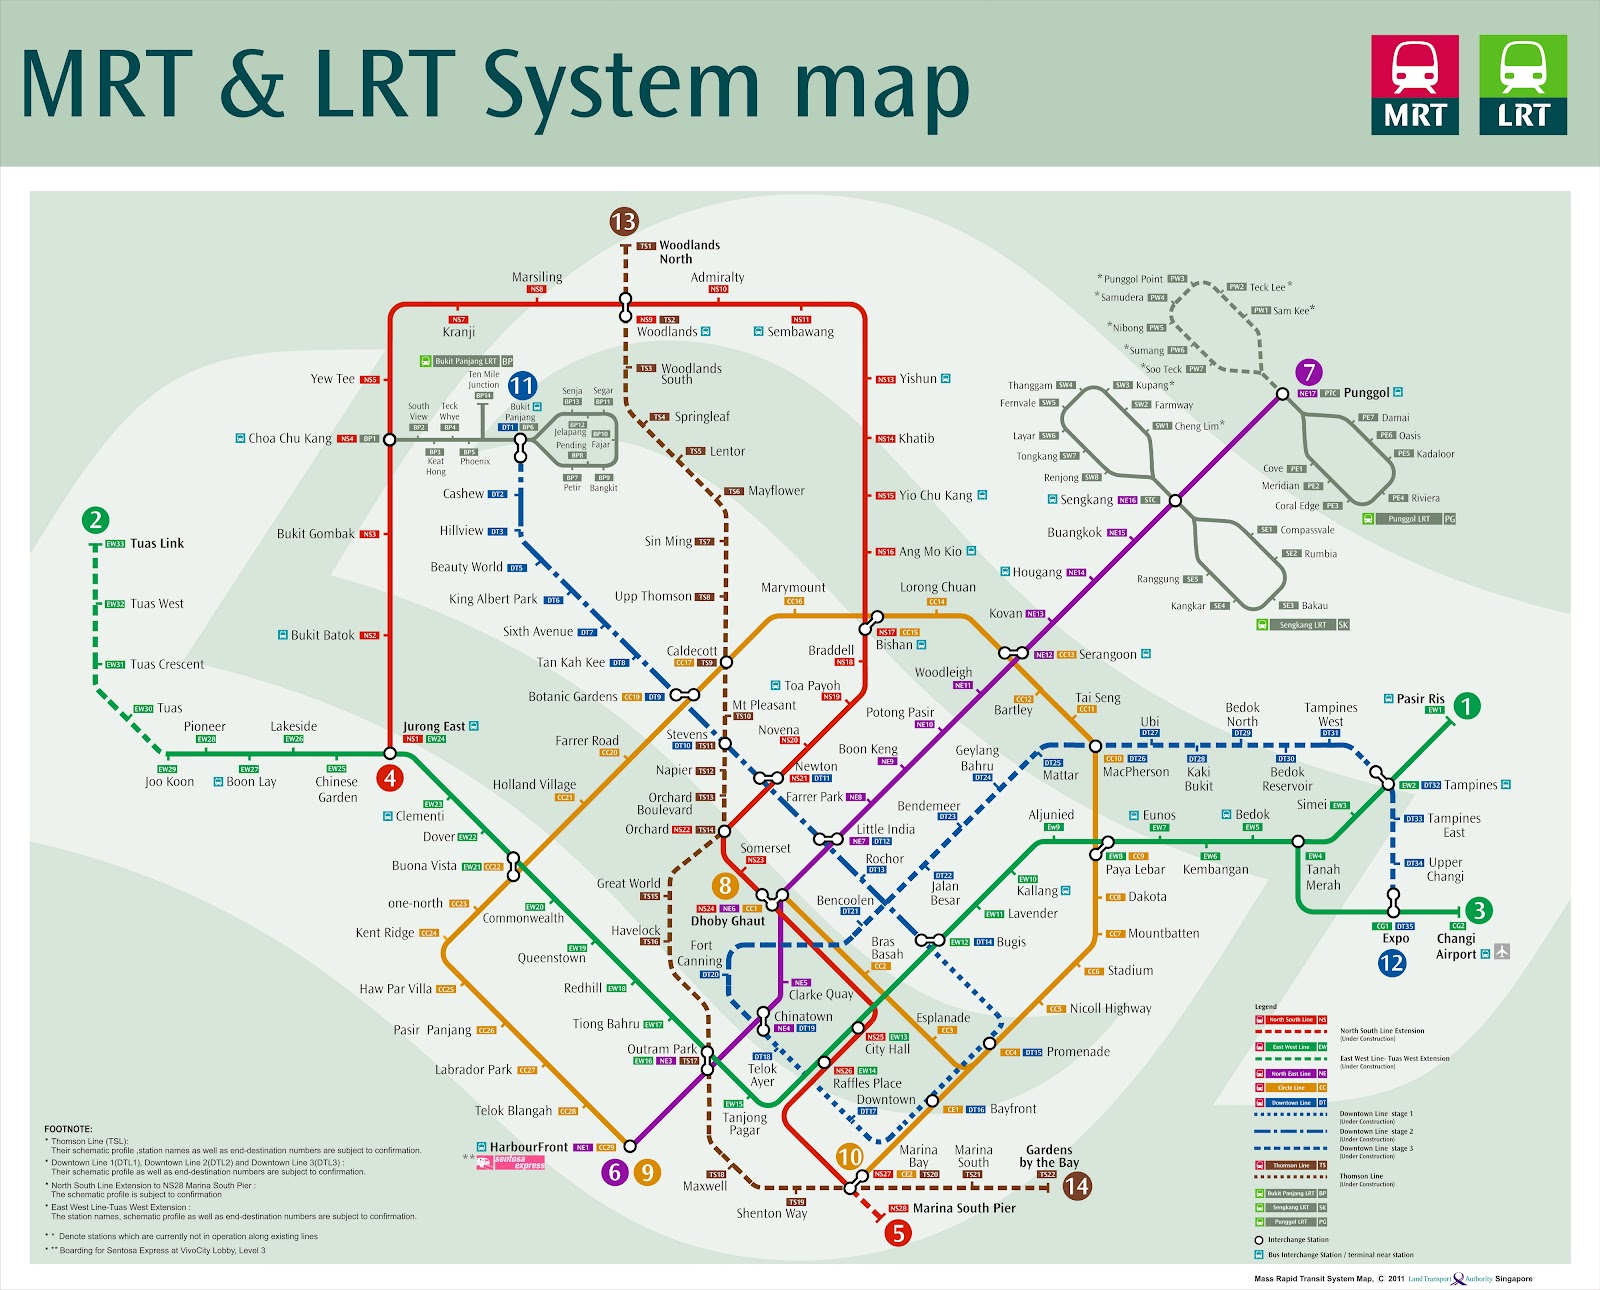 ... Line, Tuas West Extension, North South Line Extension, and Thomson